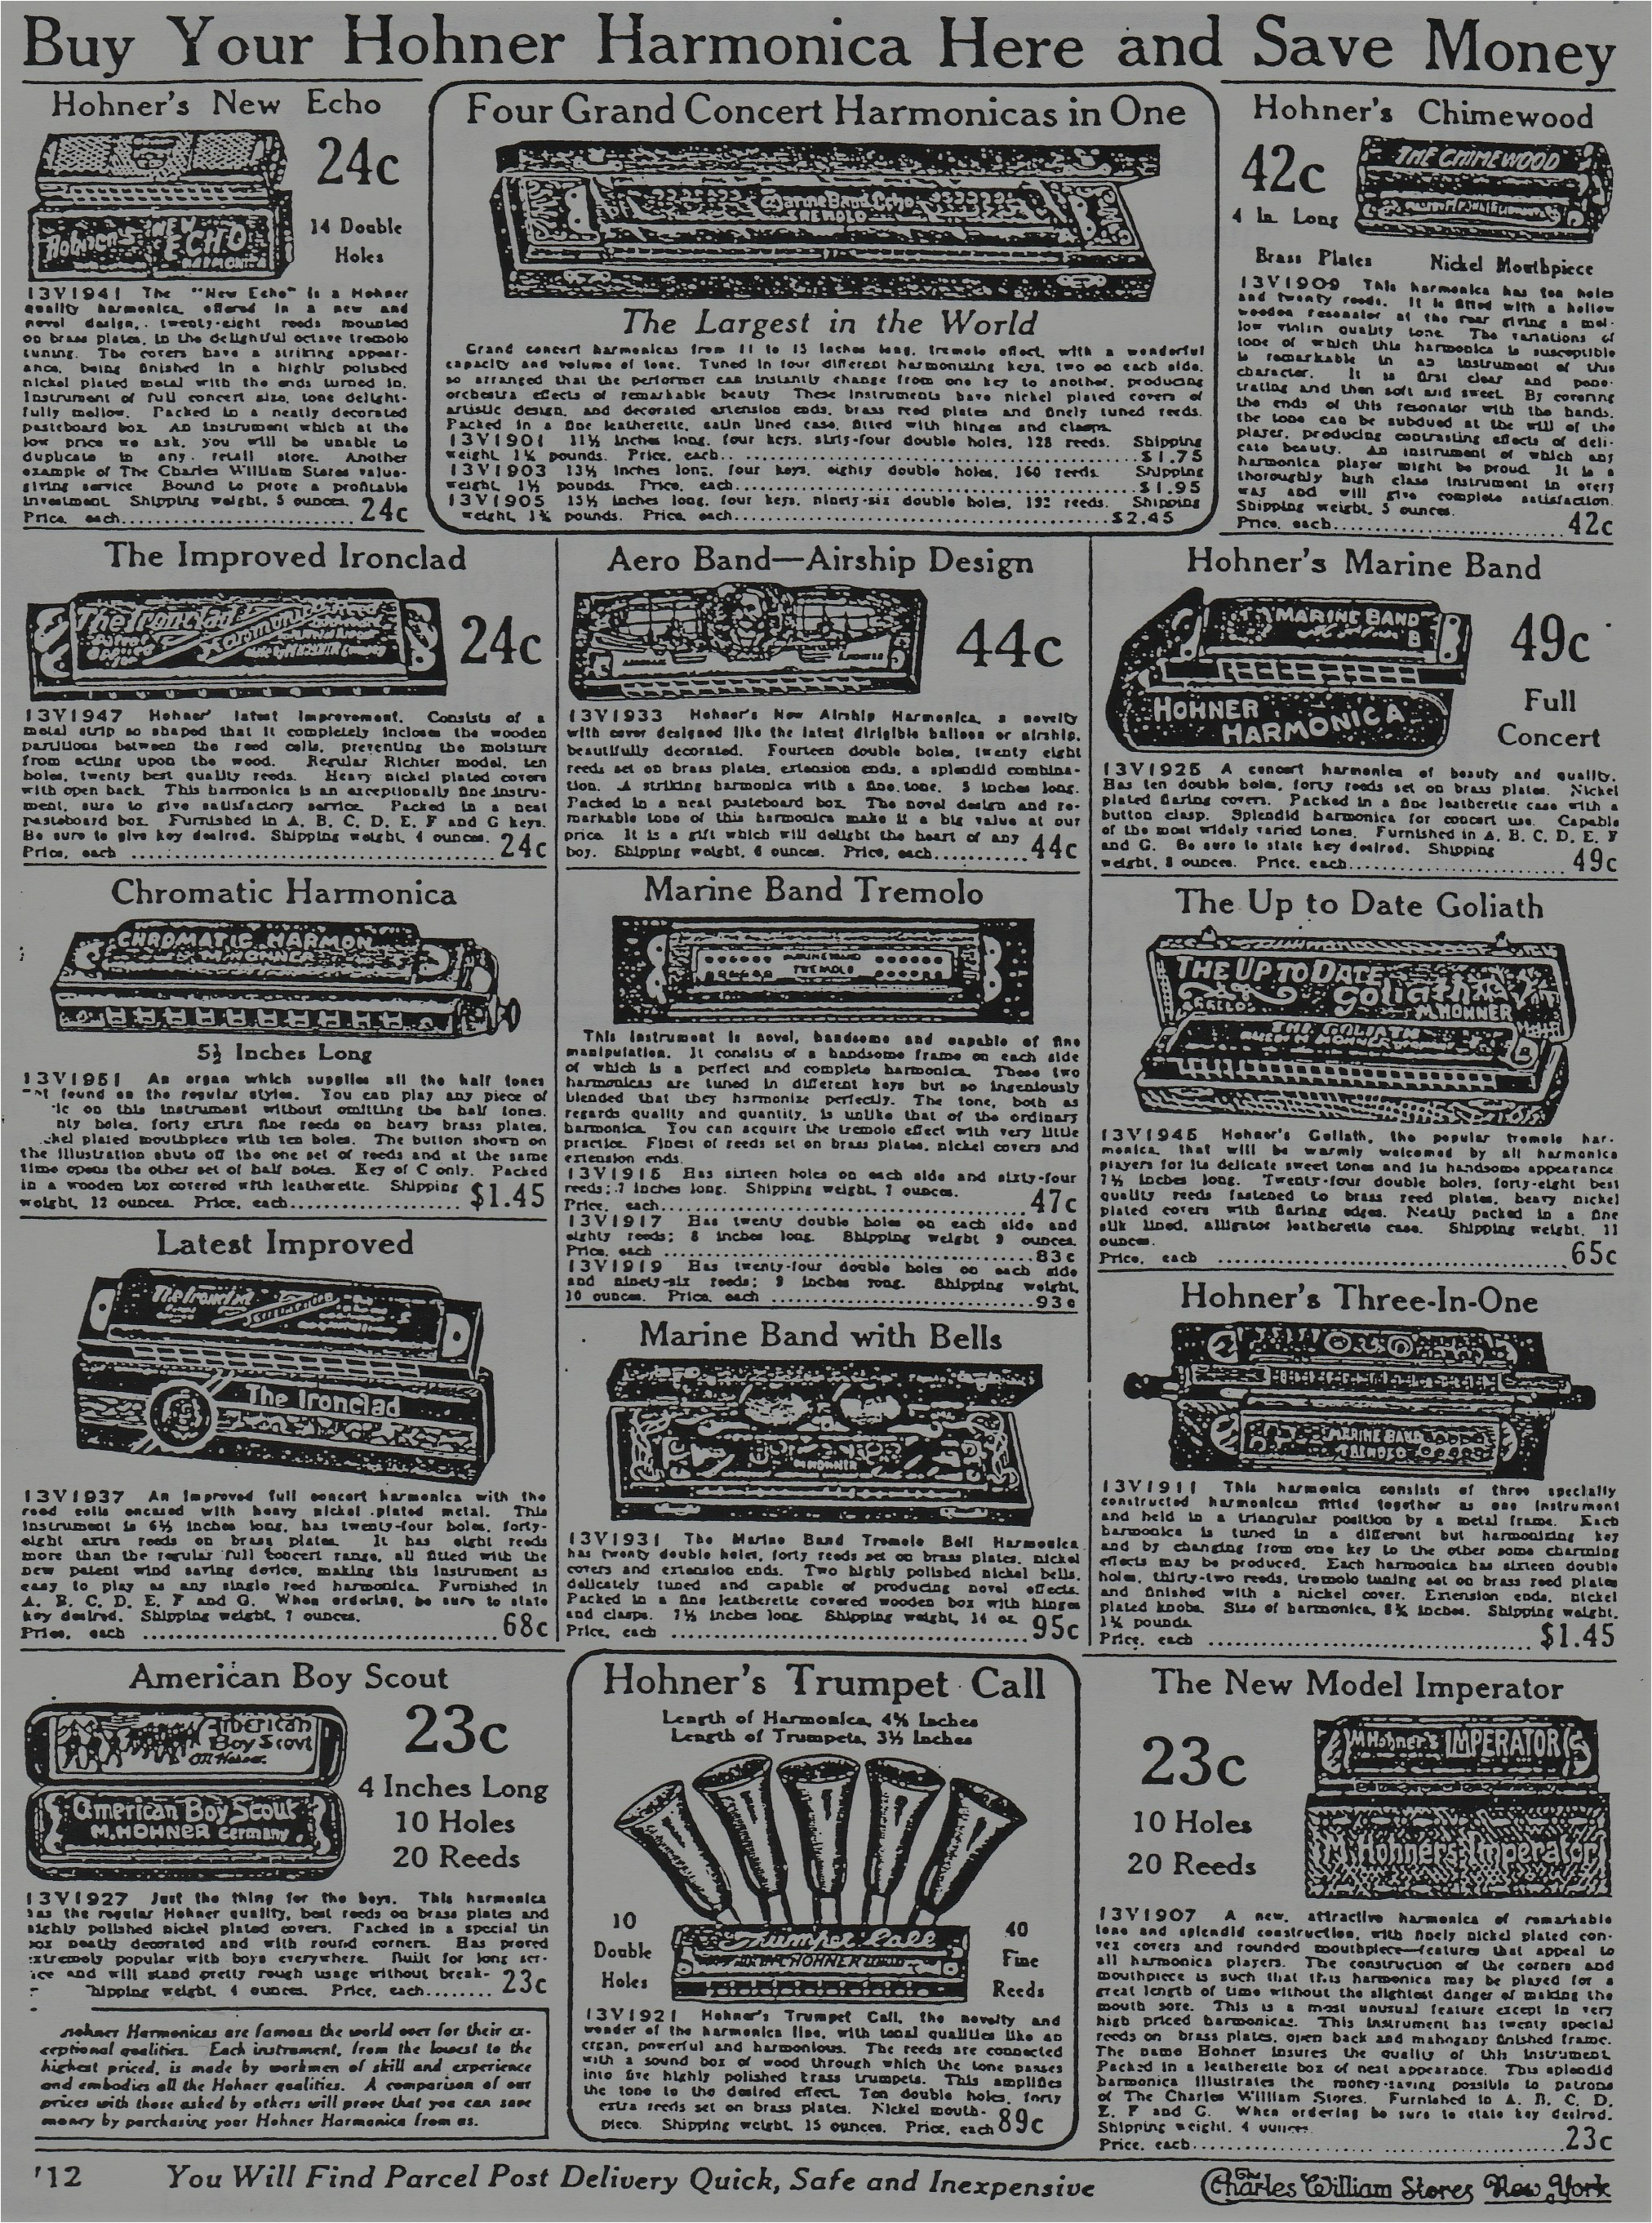 hohner promotes various display cases to its dealers ad 1 and still sells its american boy scout harmonica for 23 cents